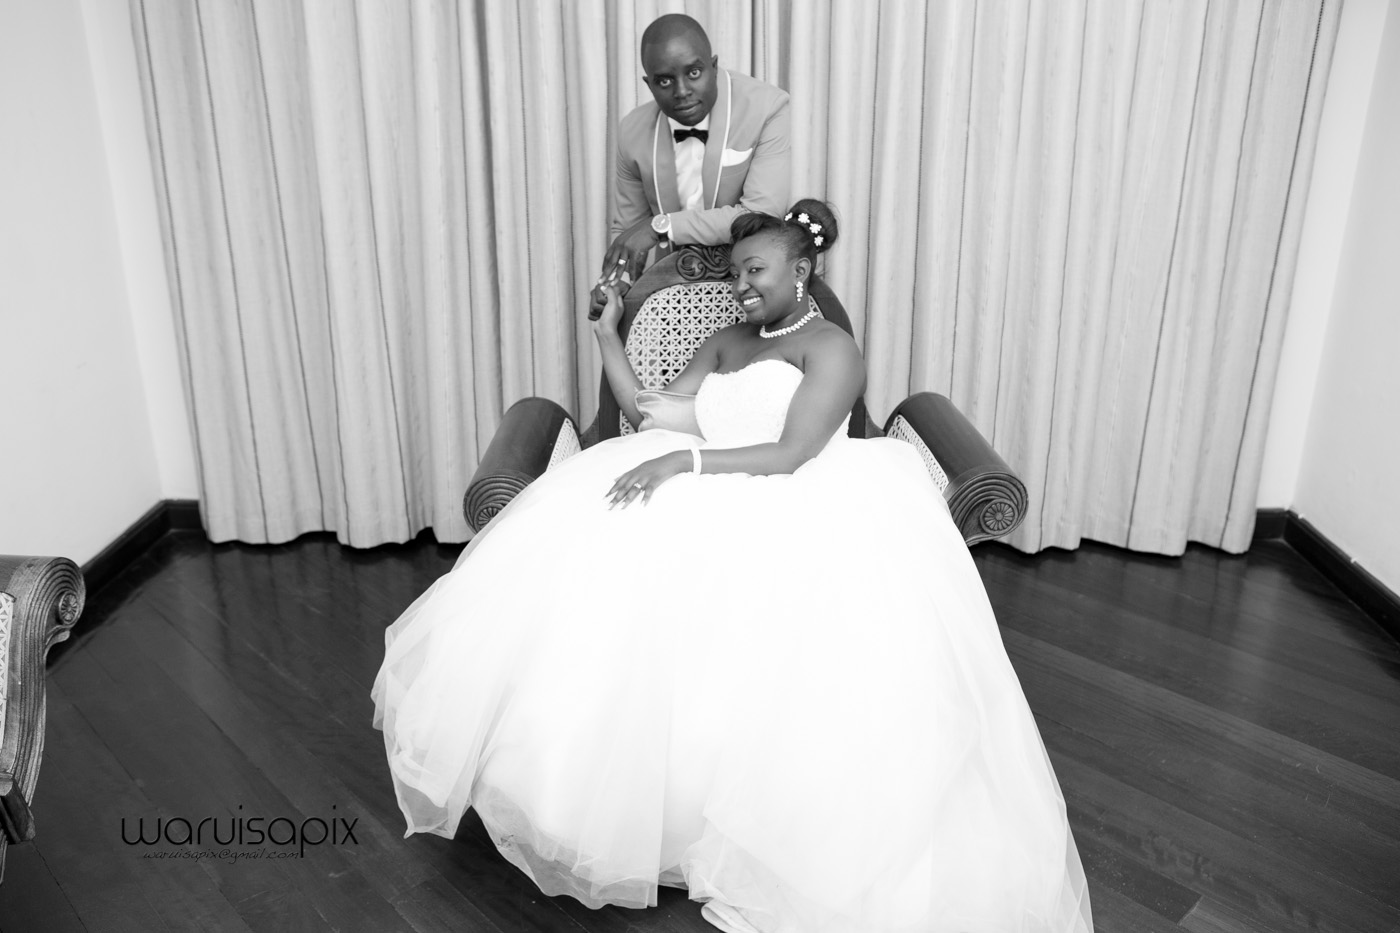 kenyas top wedding photogqrapher wedding at kasarani sports stadium (127 of 127)